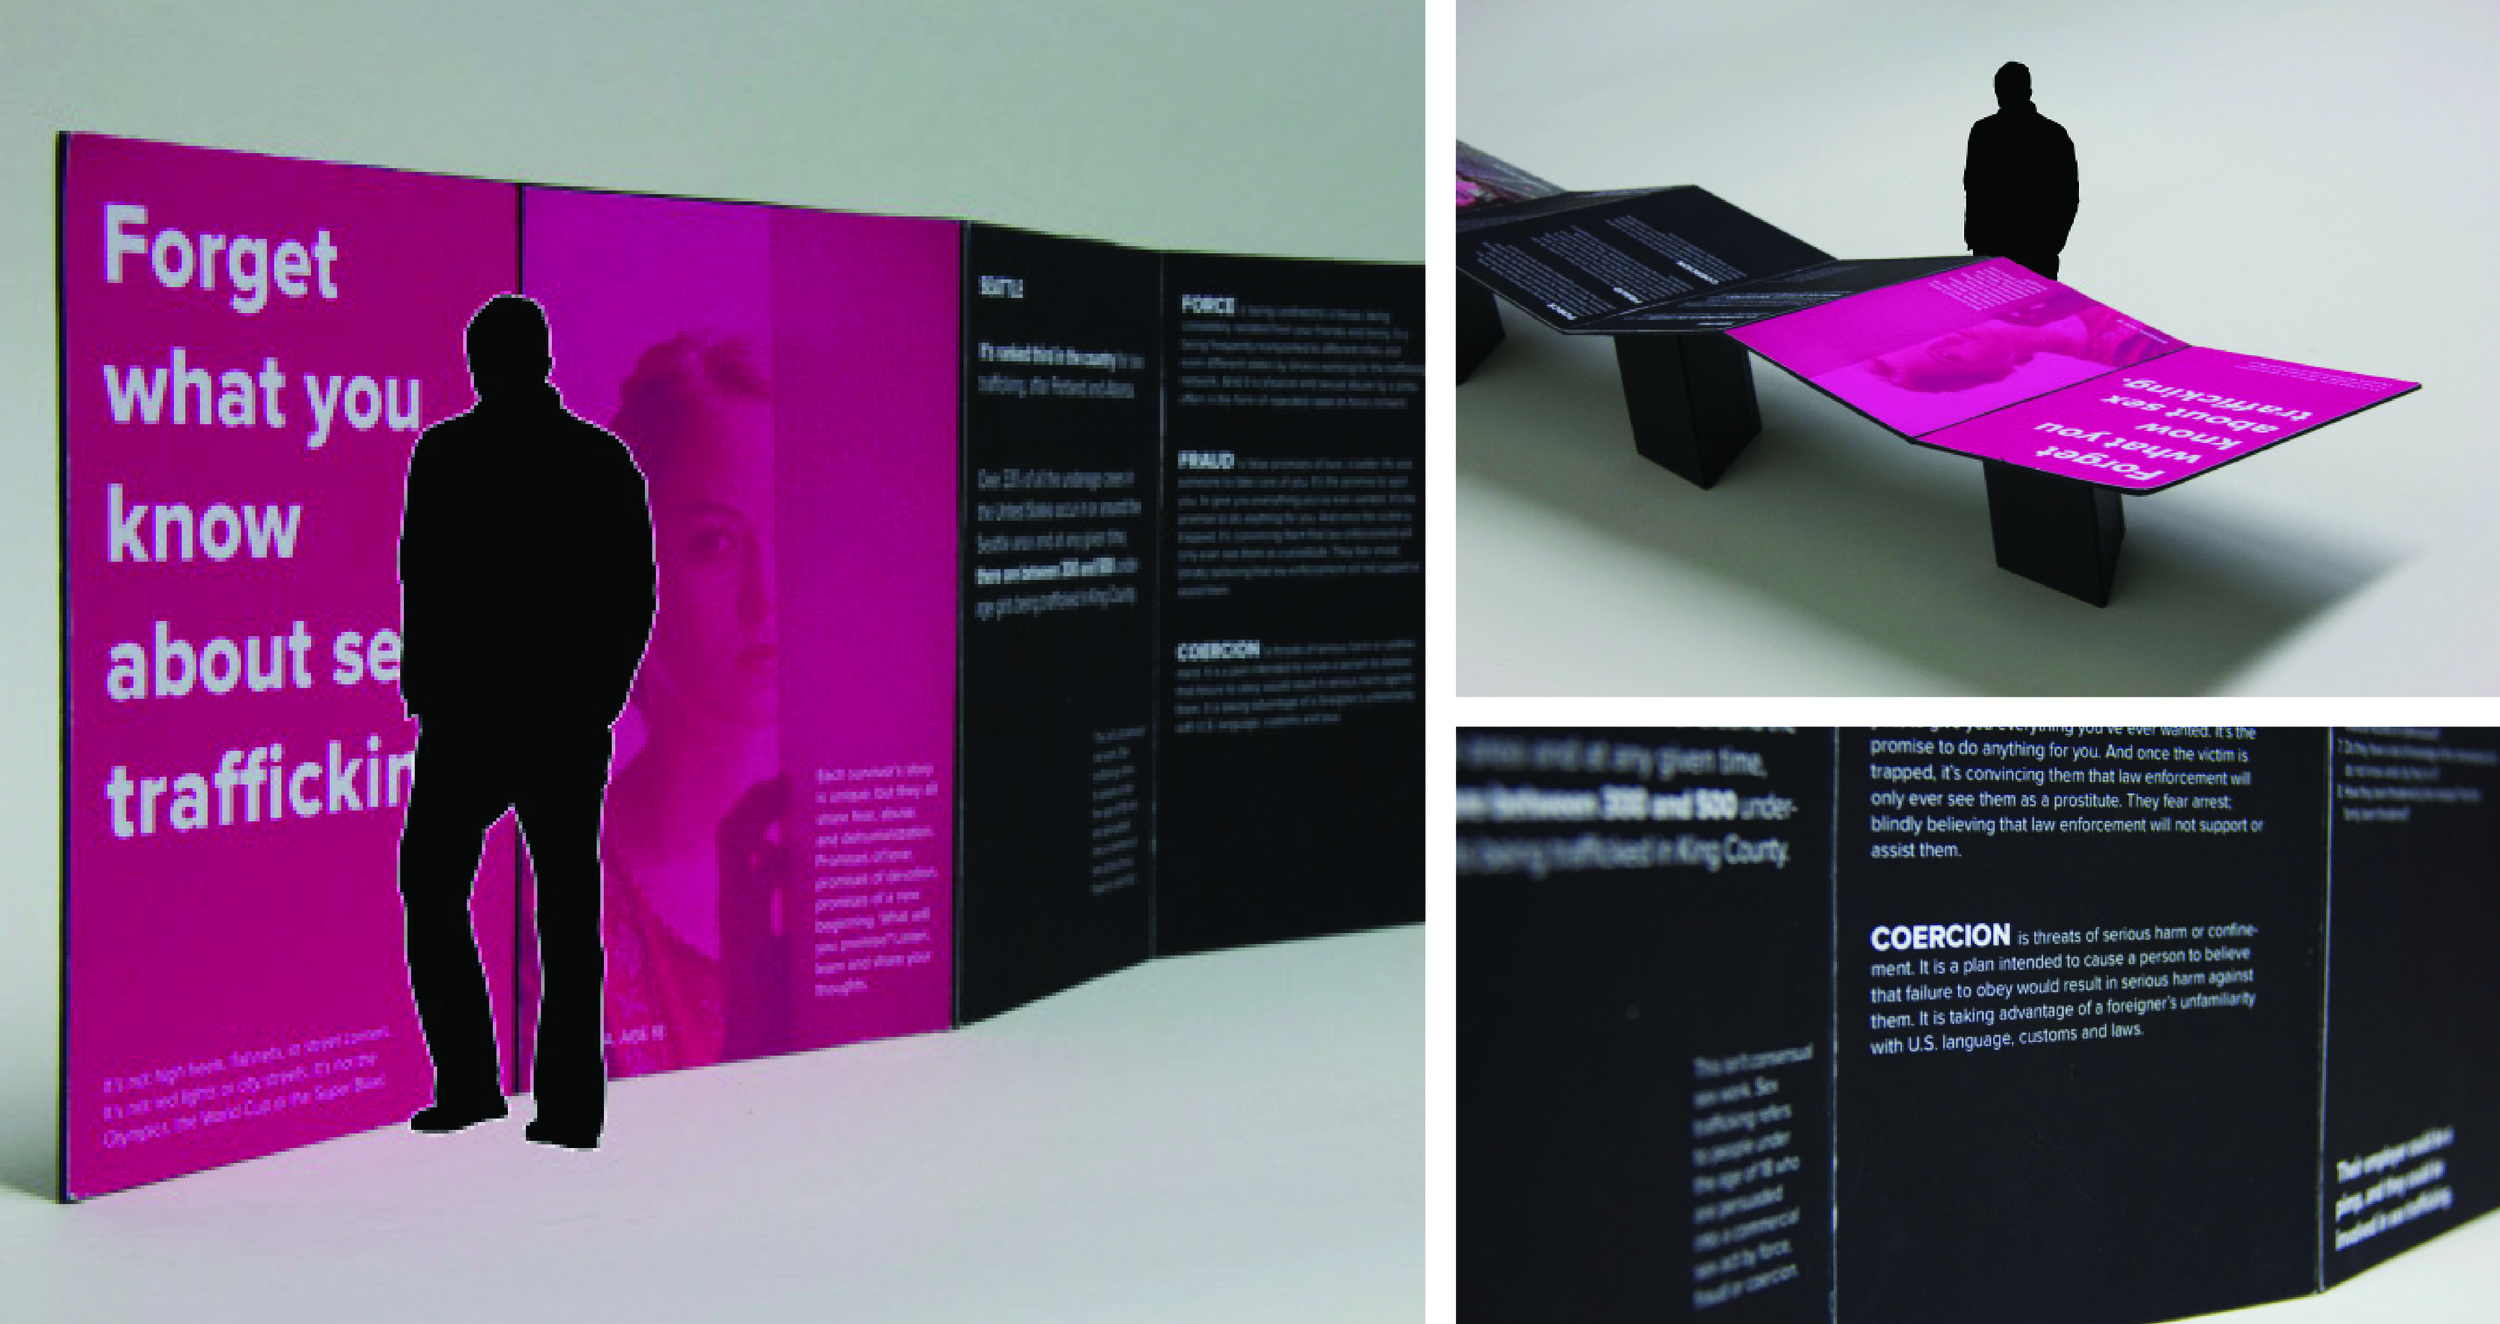 A table displaying information in the center of the exhibition doubles as a traveling exhibit, allowing for education on sex trafficking to reach a larger audience.